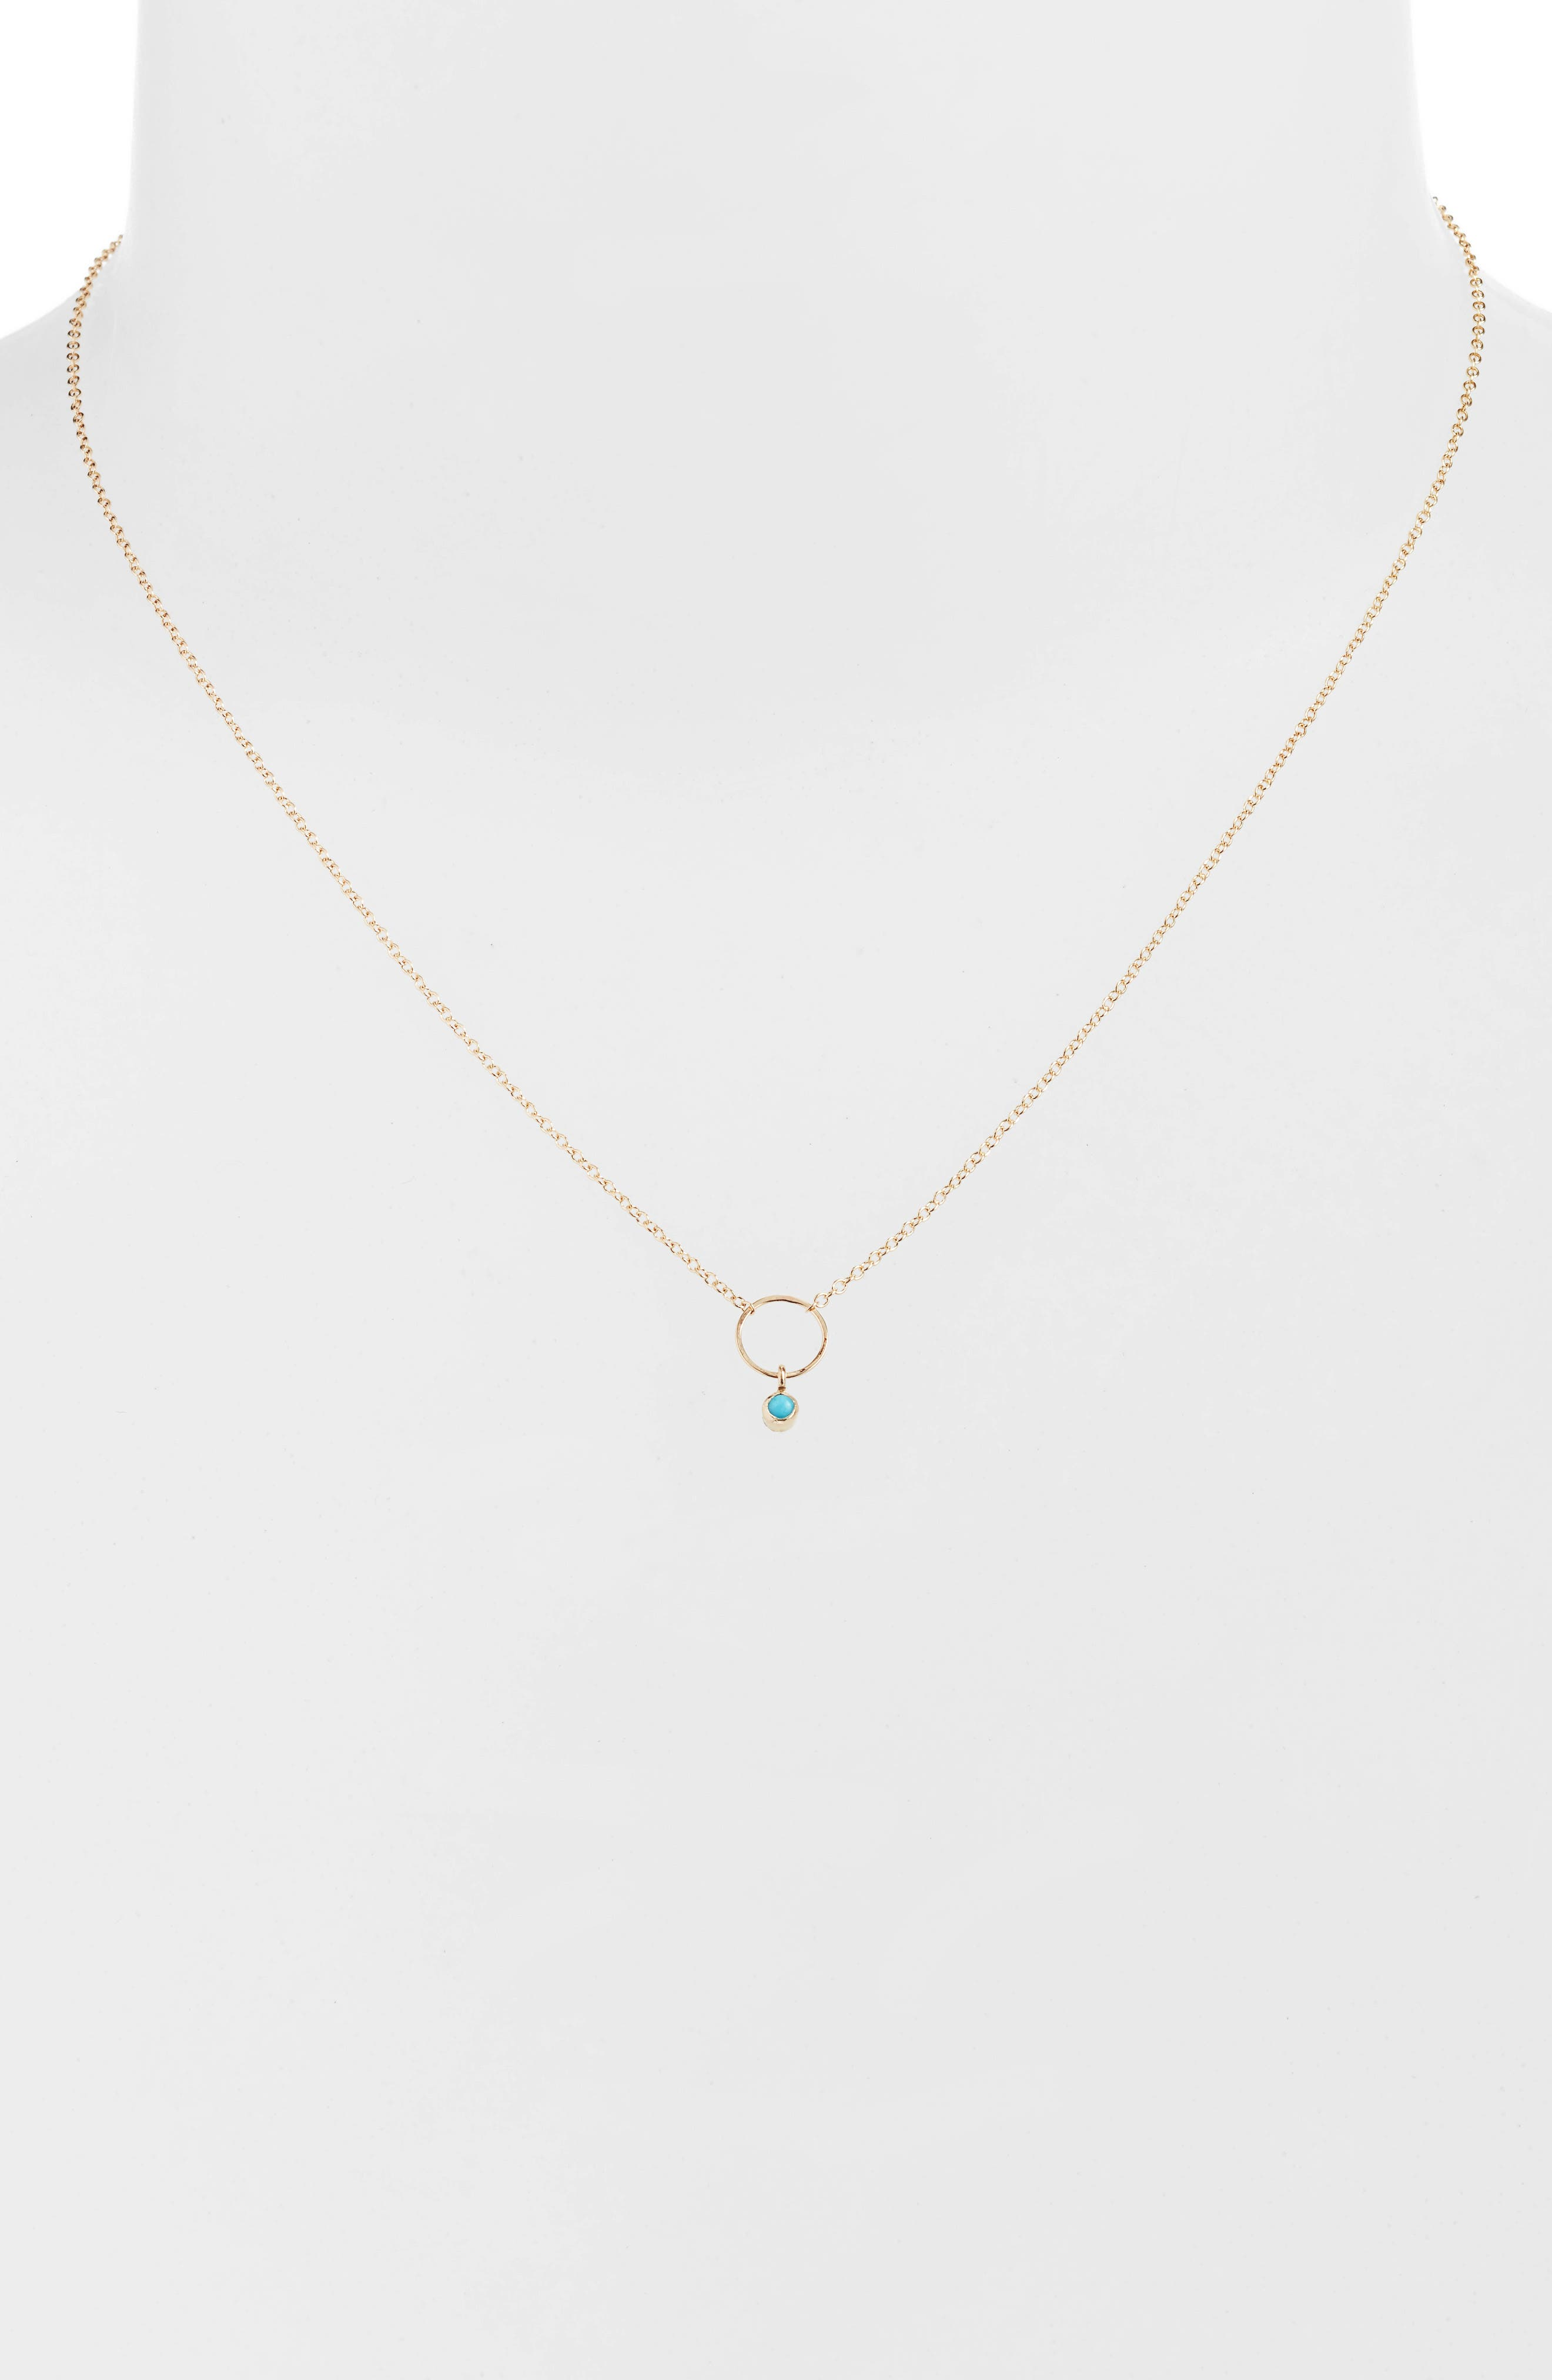 Dangling Turquoise Circle Pendant Necklace,                             Main thumbnail 1, color,                             Yellow Gold